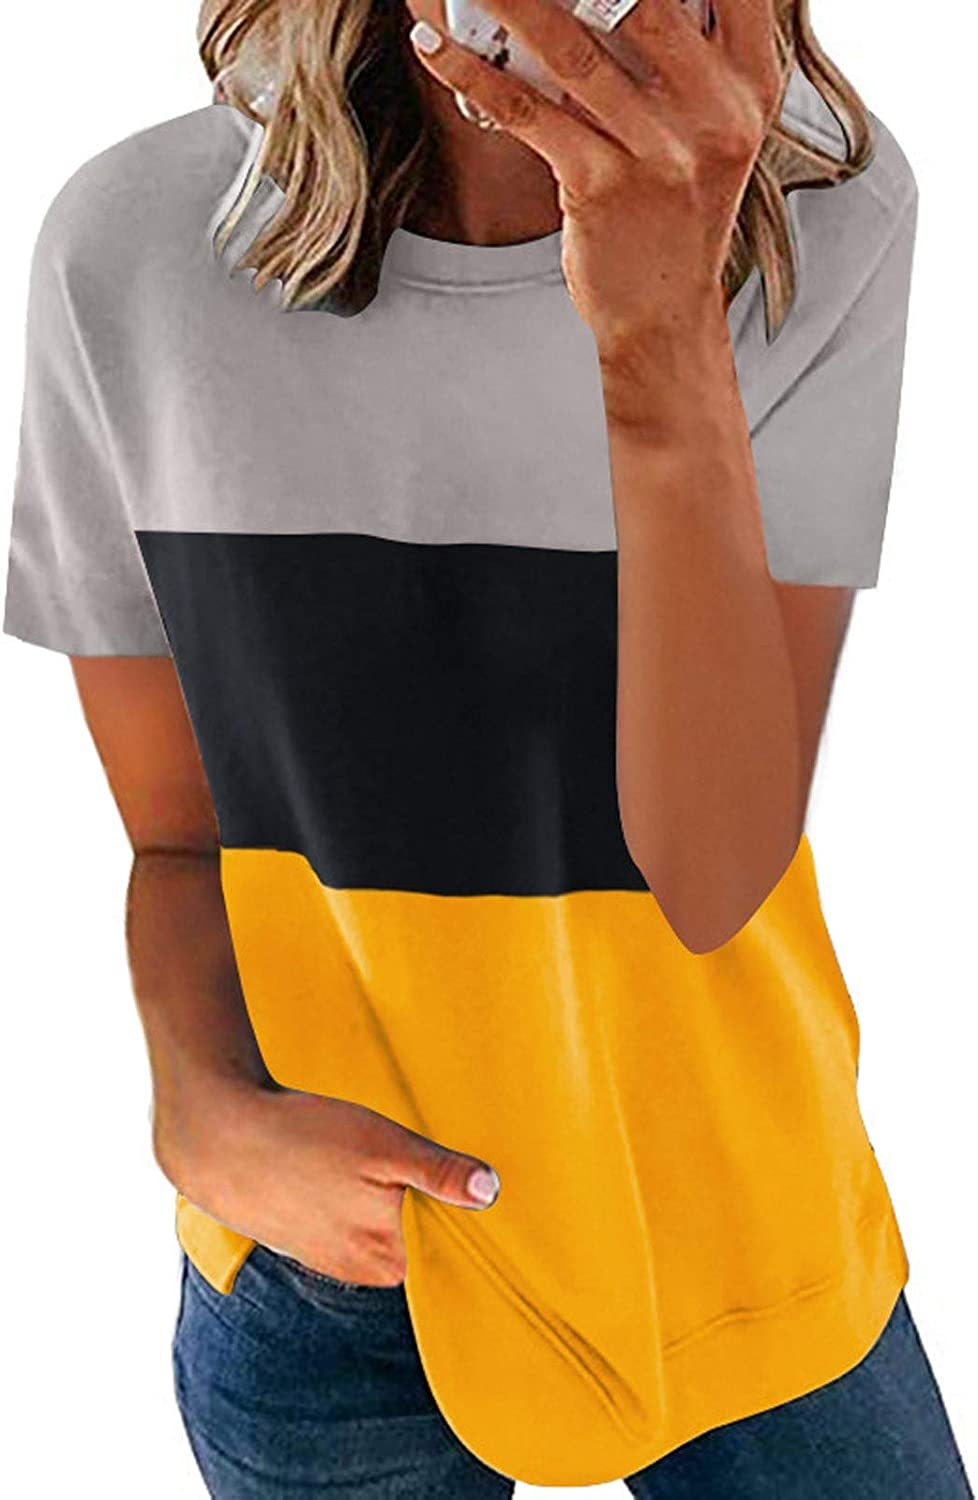 AODONG T Shirts for Women Short Sleeve Tops Summer Color Block Casual Blouses Crewneck Comfy Pullover Shirts Tunics